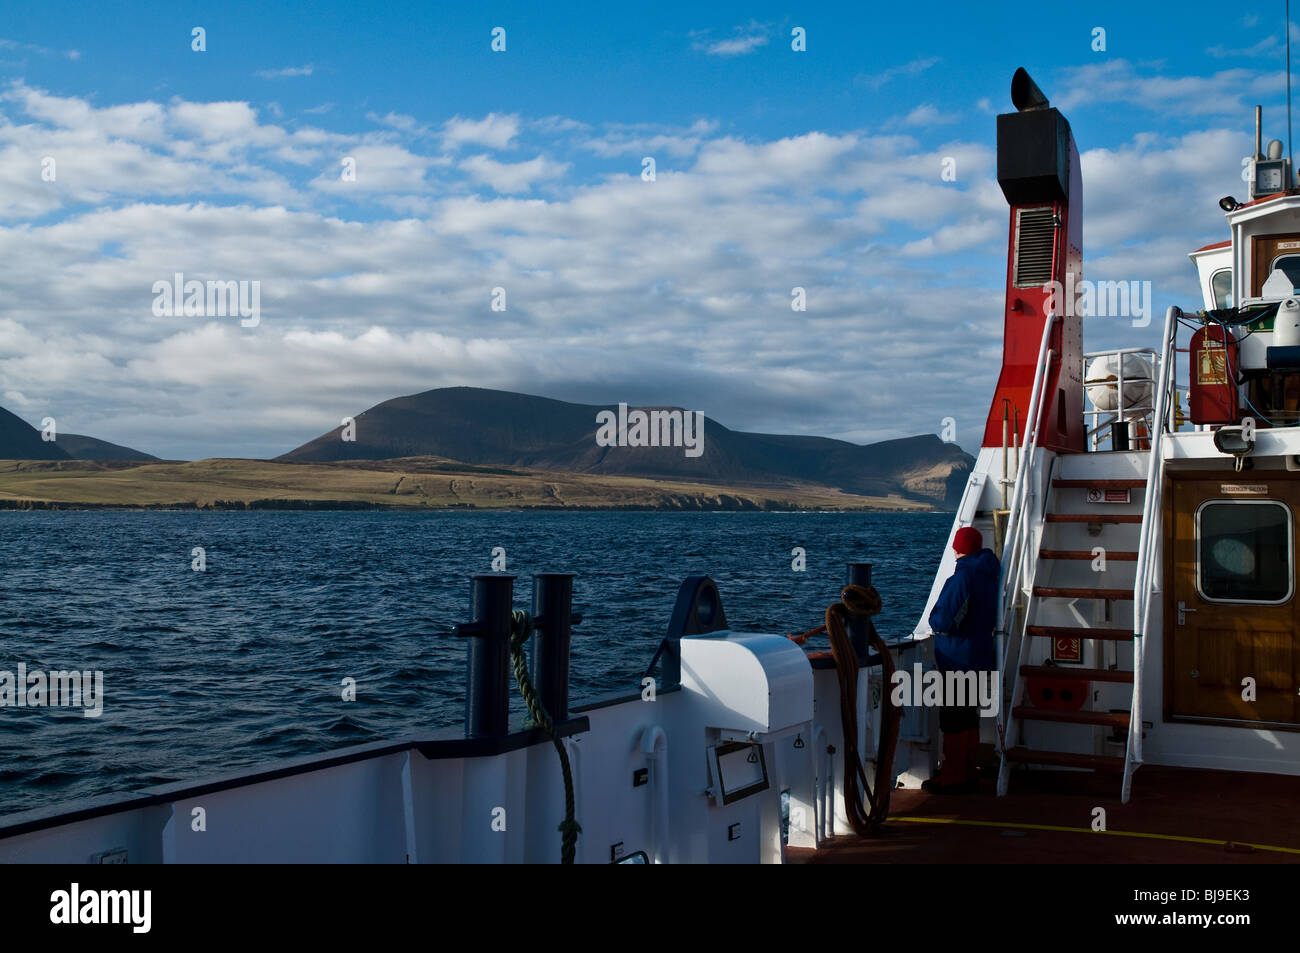 dh Orkney ferries HOY SOUND ORKNEY Hoy Hills view from aboard Orkney Ferries MV Graemsay tourist passenger Stock Photo